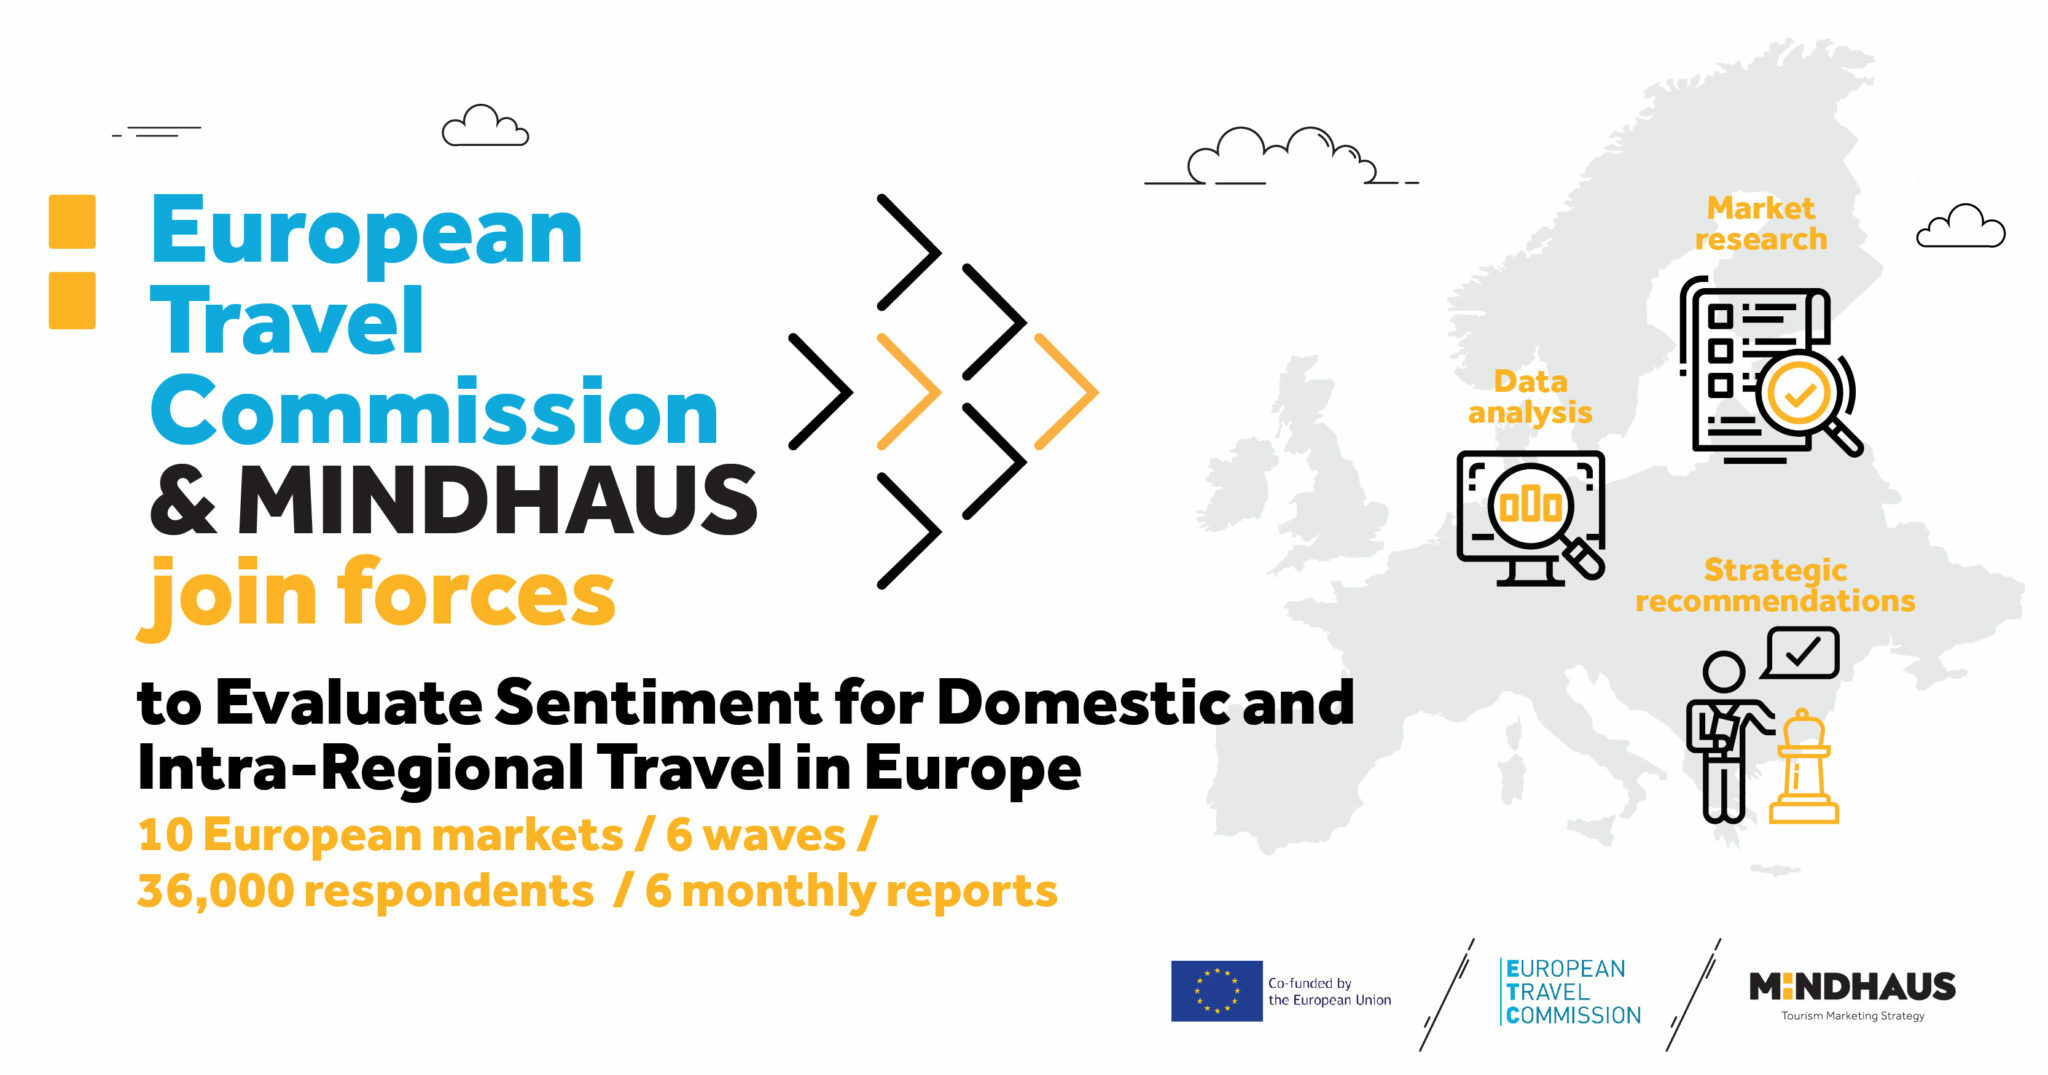 ETC and MINDHAUS join forces to evaluate sentiment for domestic and intra-European travel